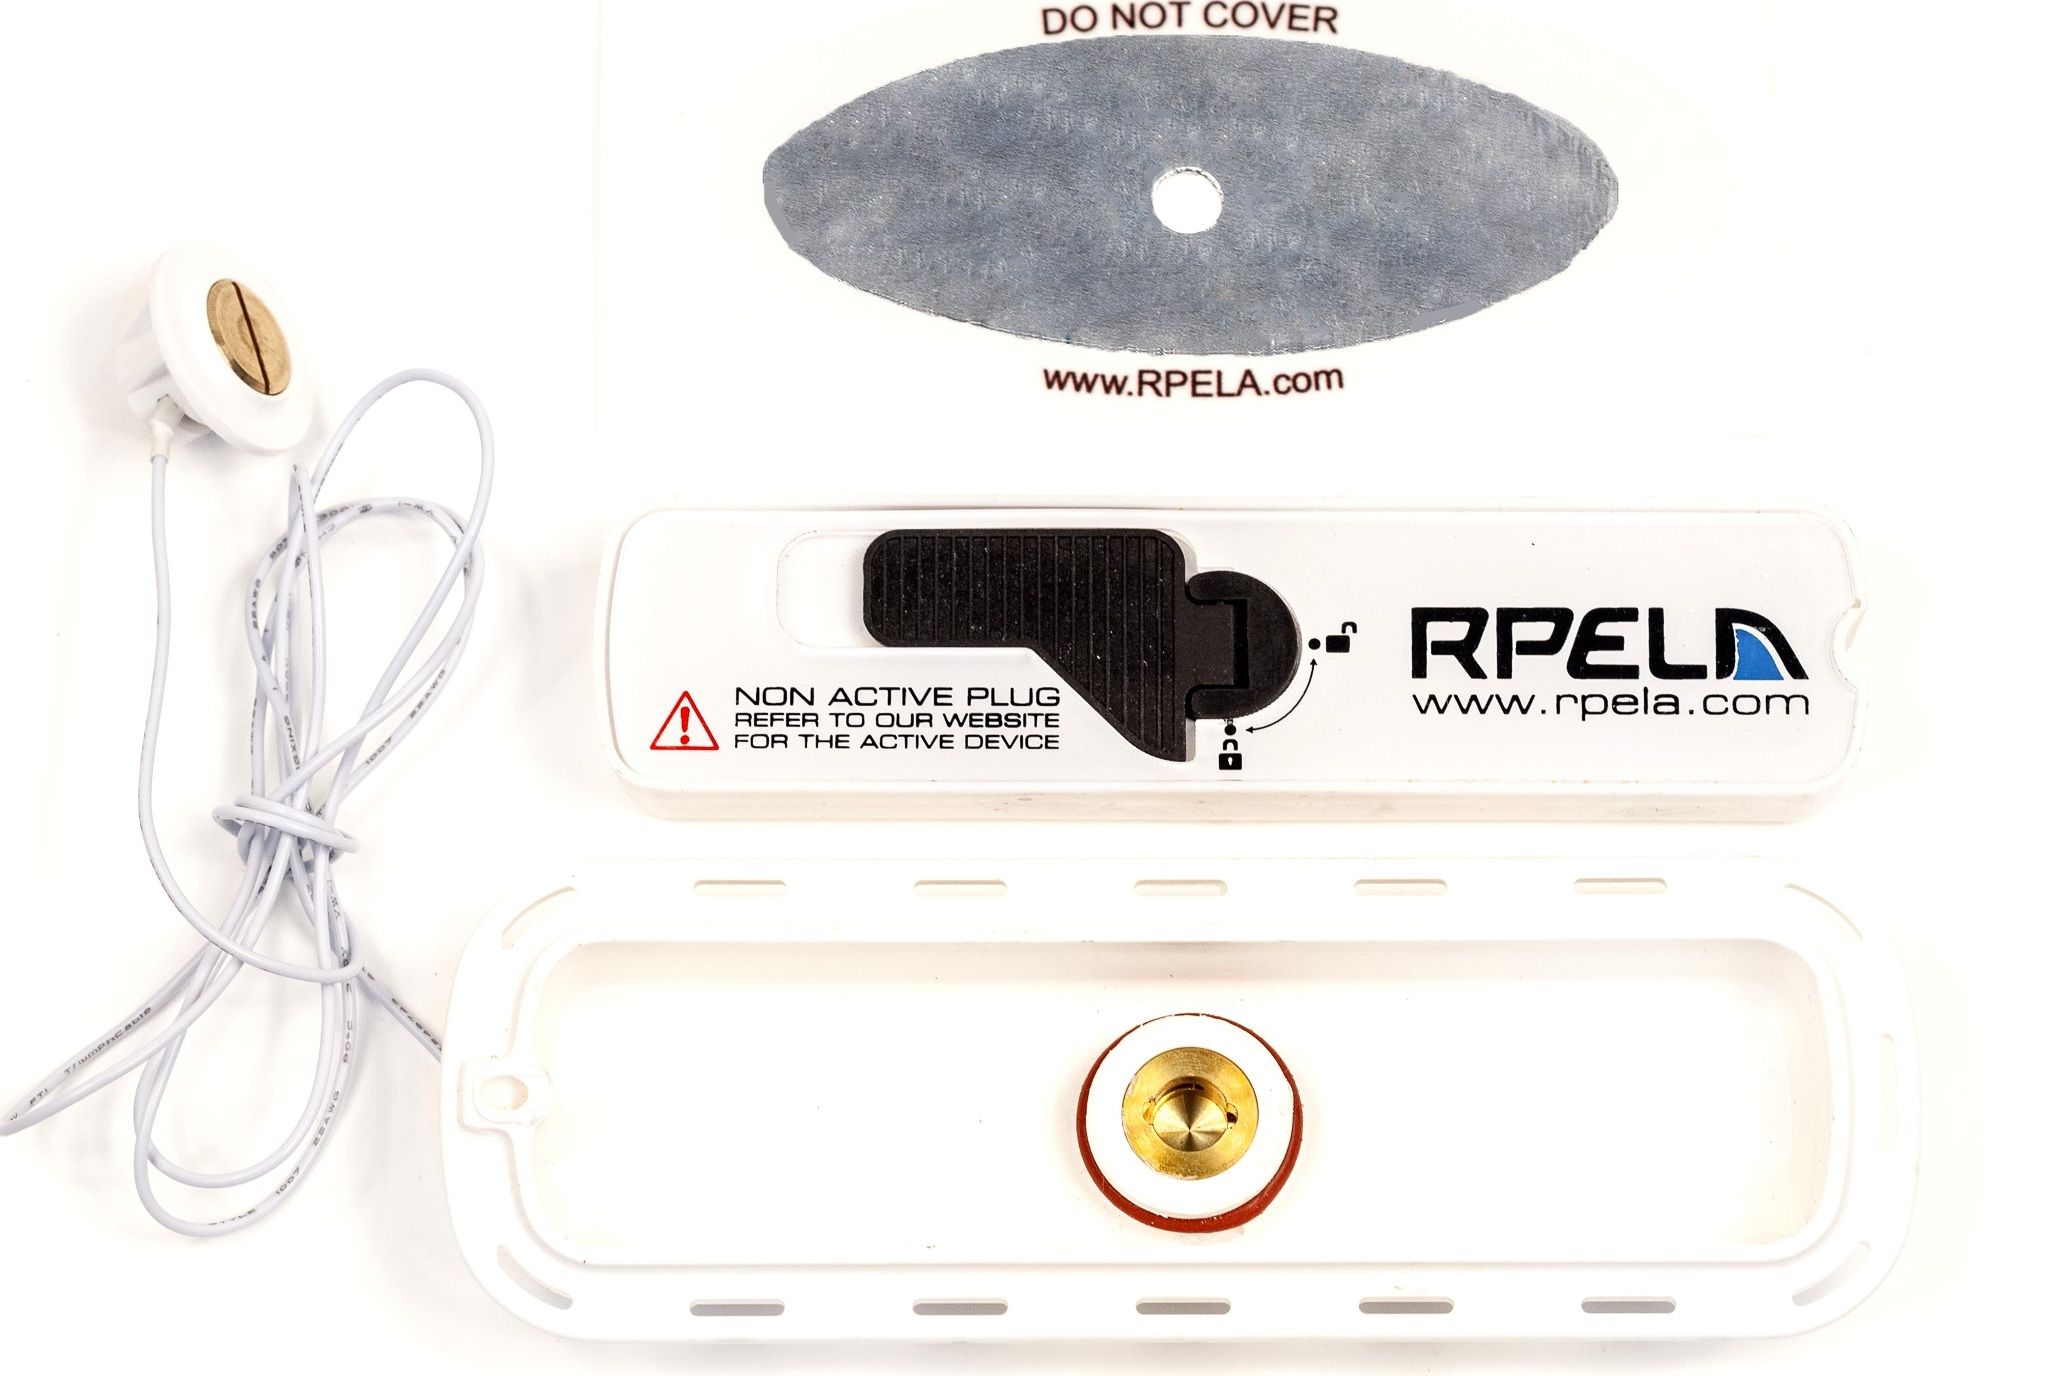 RPELA Sub and Housing - $55.00 AUD